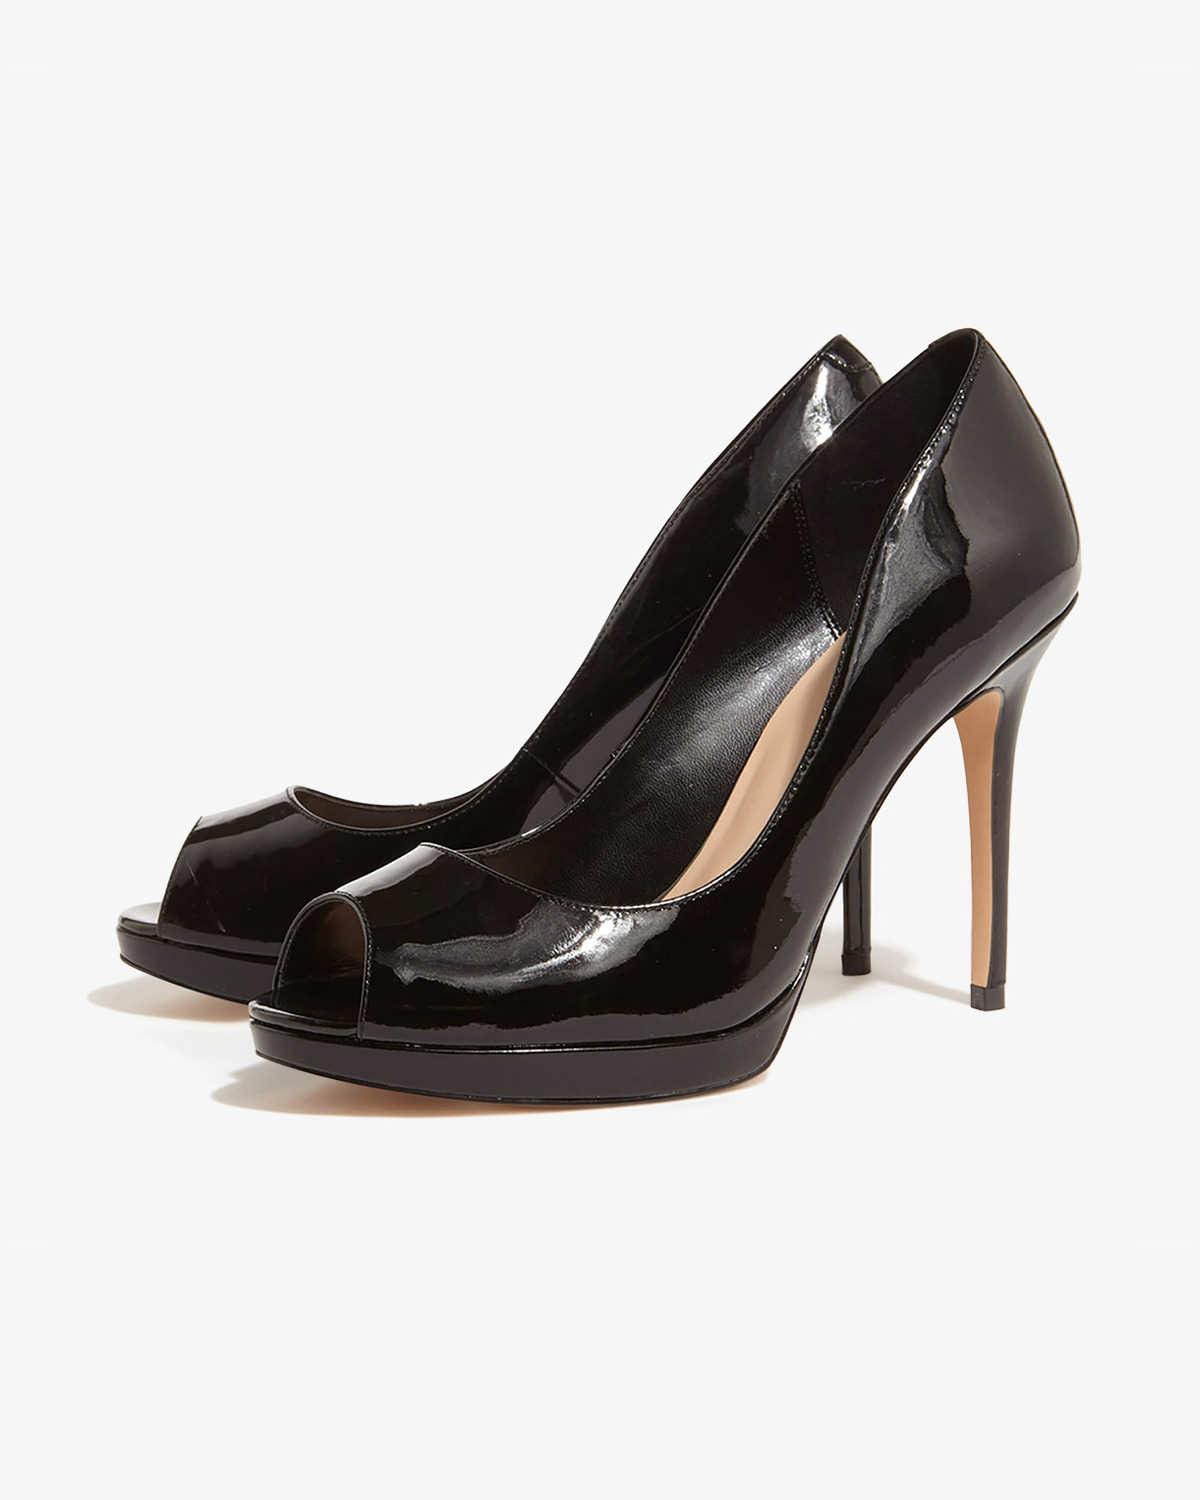 2ab6b2a175f Lyst - Phase Eight Poppy Patent Leather High Heel Shoes in Black